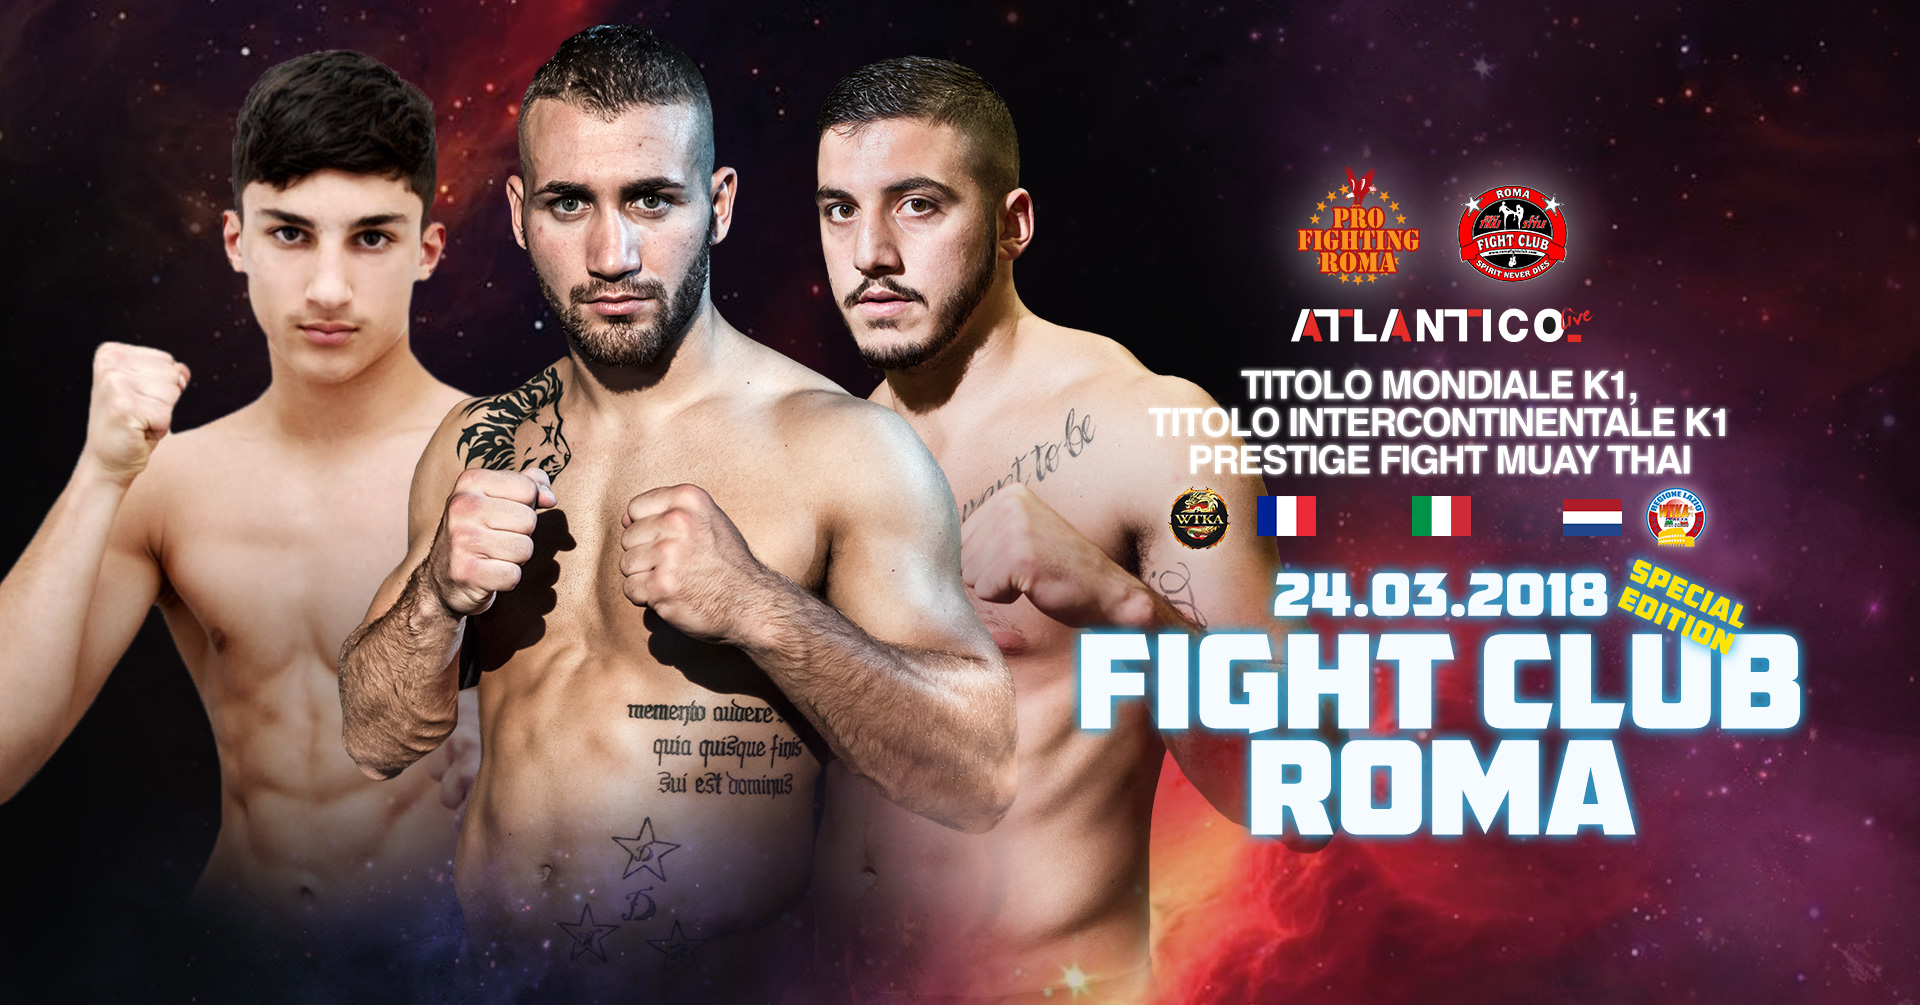 24 Marzo 2018, Fight Club Roma, Atlantico Live